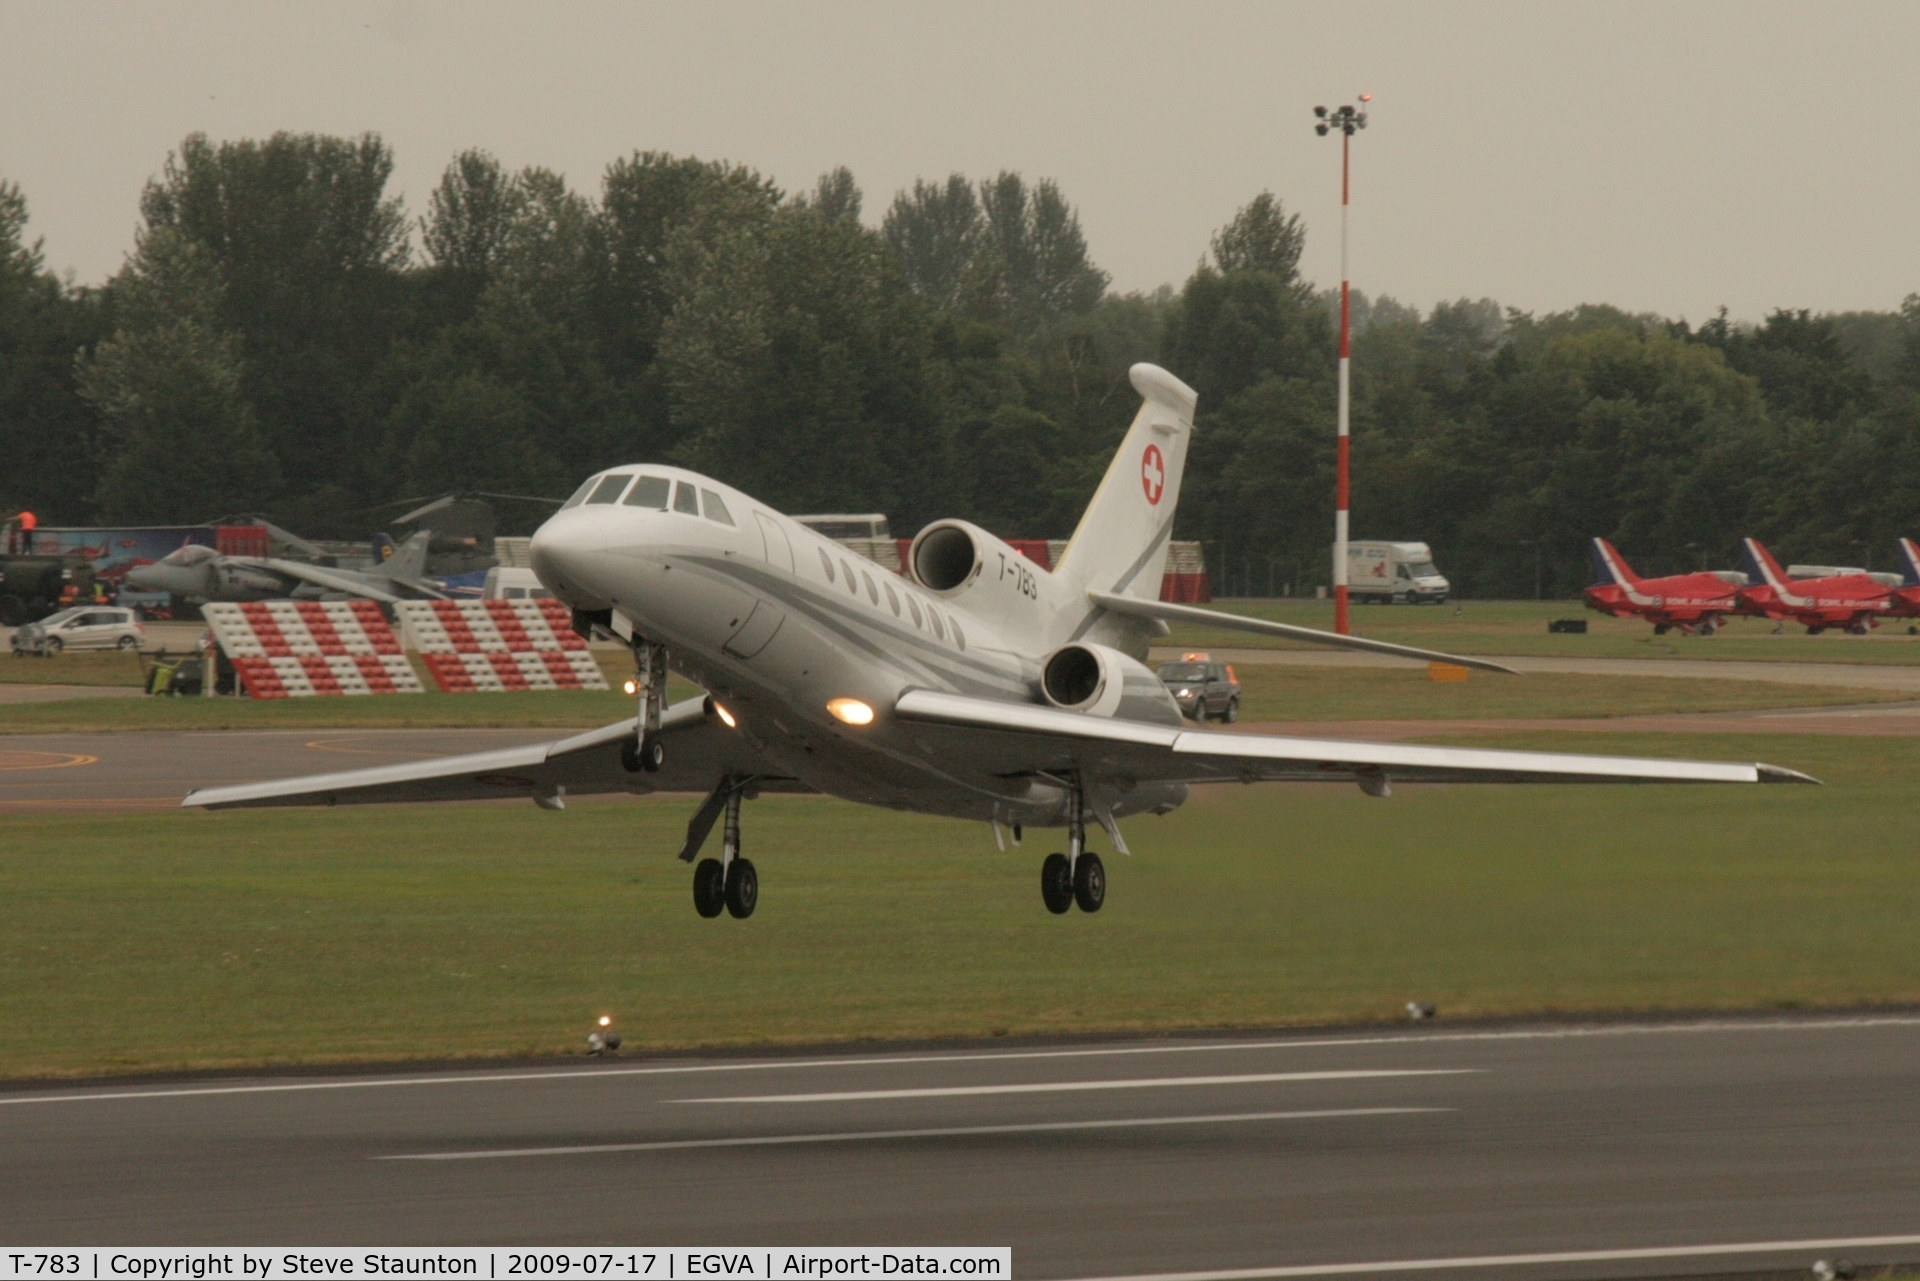 T-783, Dassault Falcon 50 C/N 67, Taken at the Royal International Air Tattoo 2009